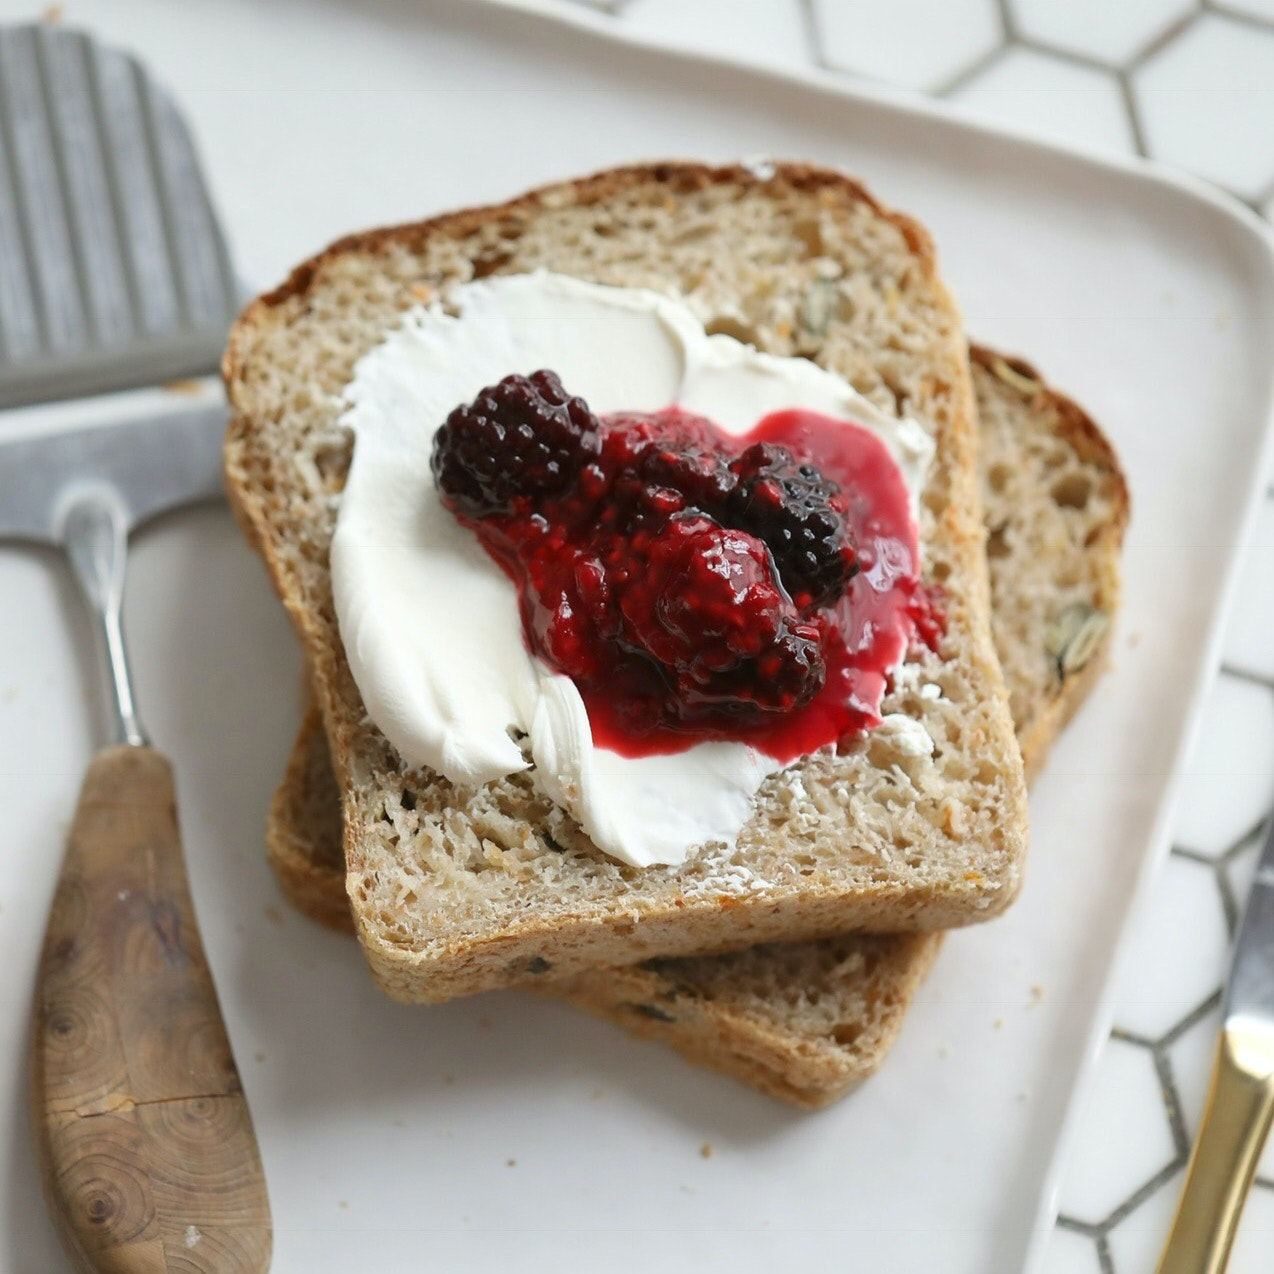 Norwegian Breakfast Bread with Homemade Jam